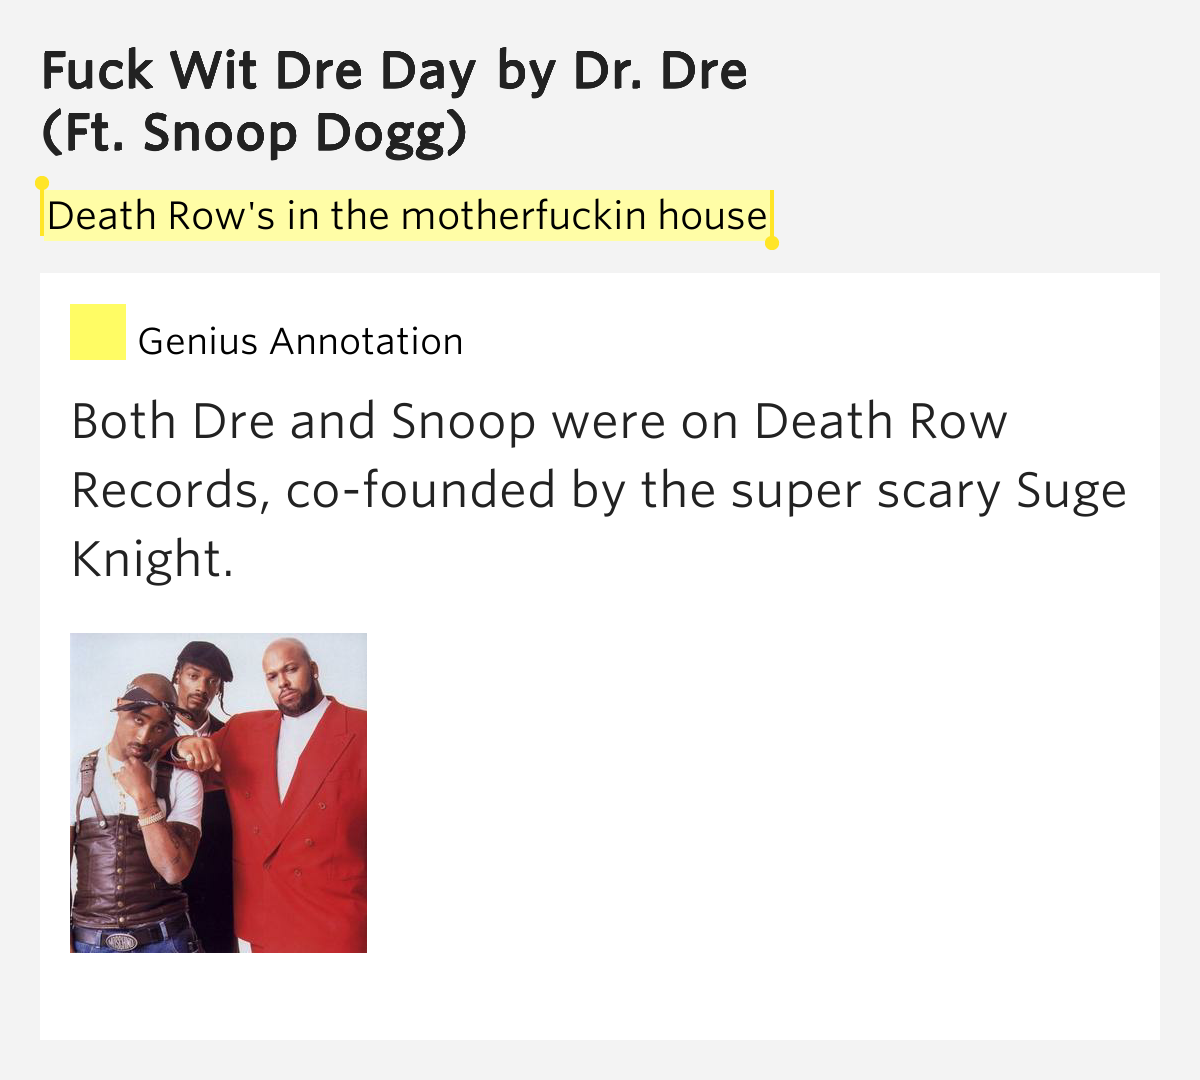 Fuck wit dre day lyric